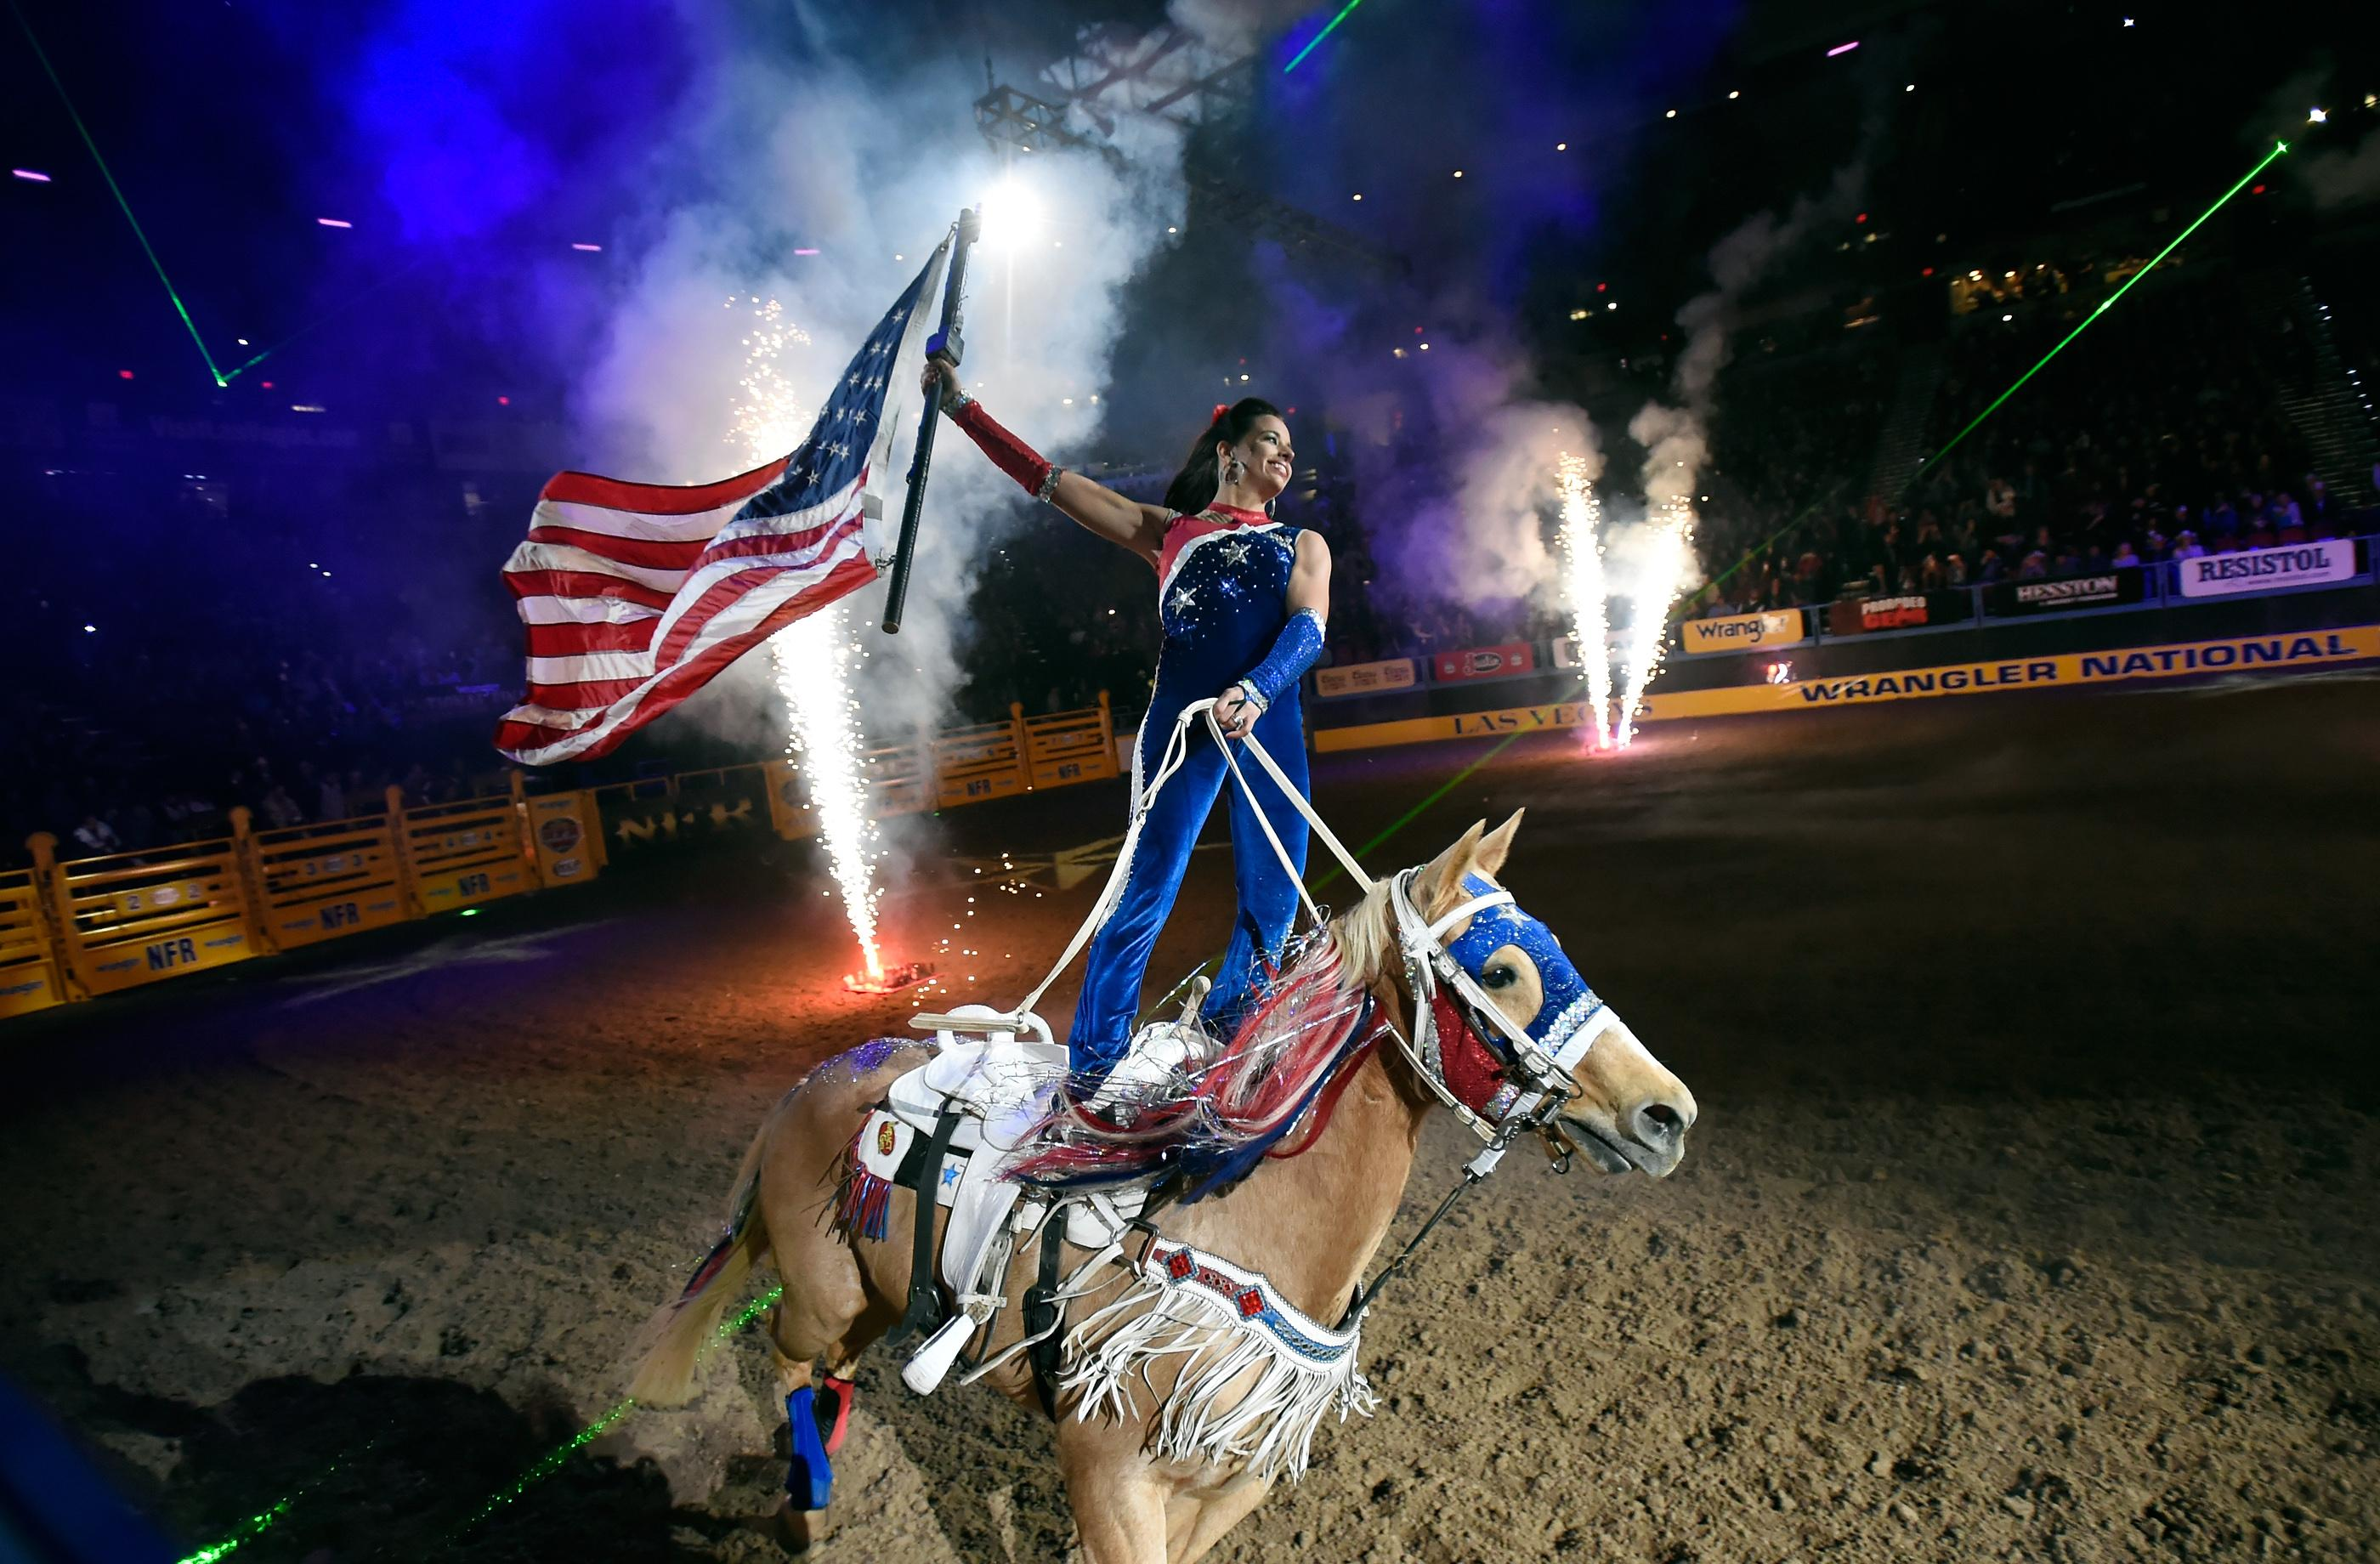 A rider carries the American flag during the opening ceremonies before the start of the seventh go-round of the National Finals Rodeo Wednesday, Dec. 13, 2017, in Las Vegas. CREDIT: David Becker/Las Vegas News Bureau